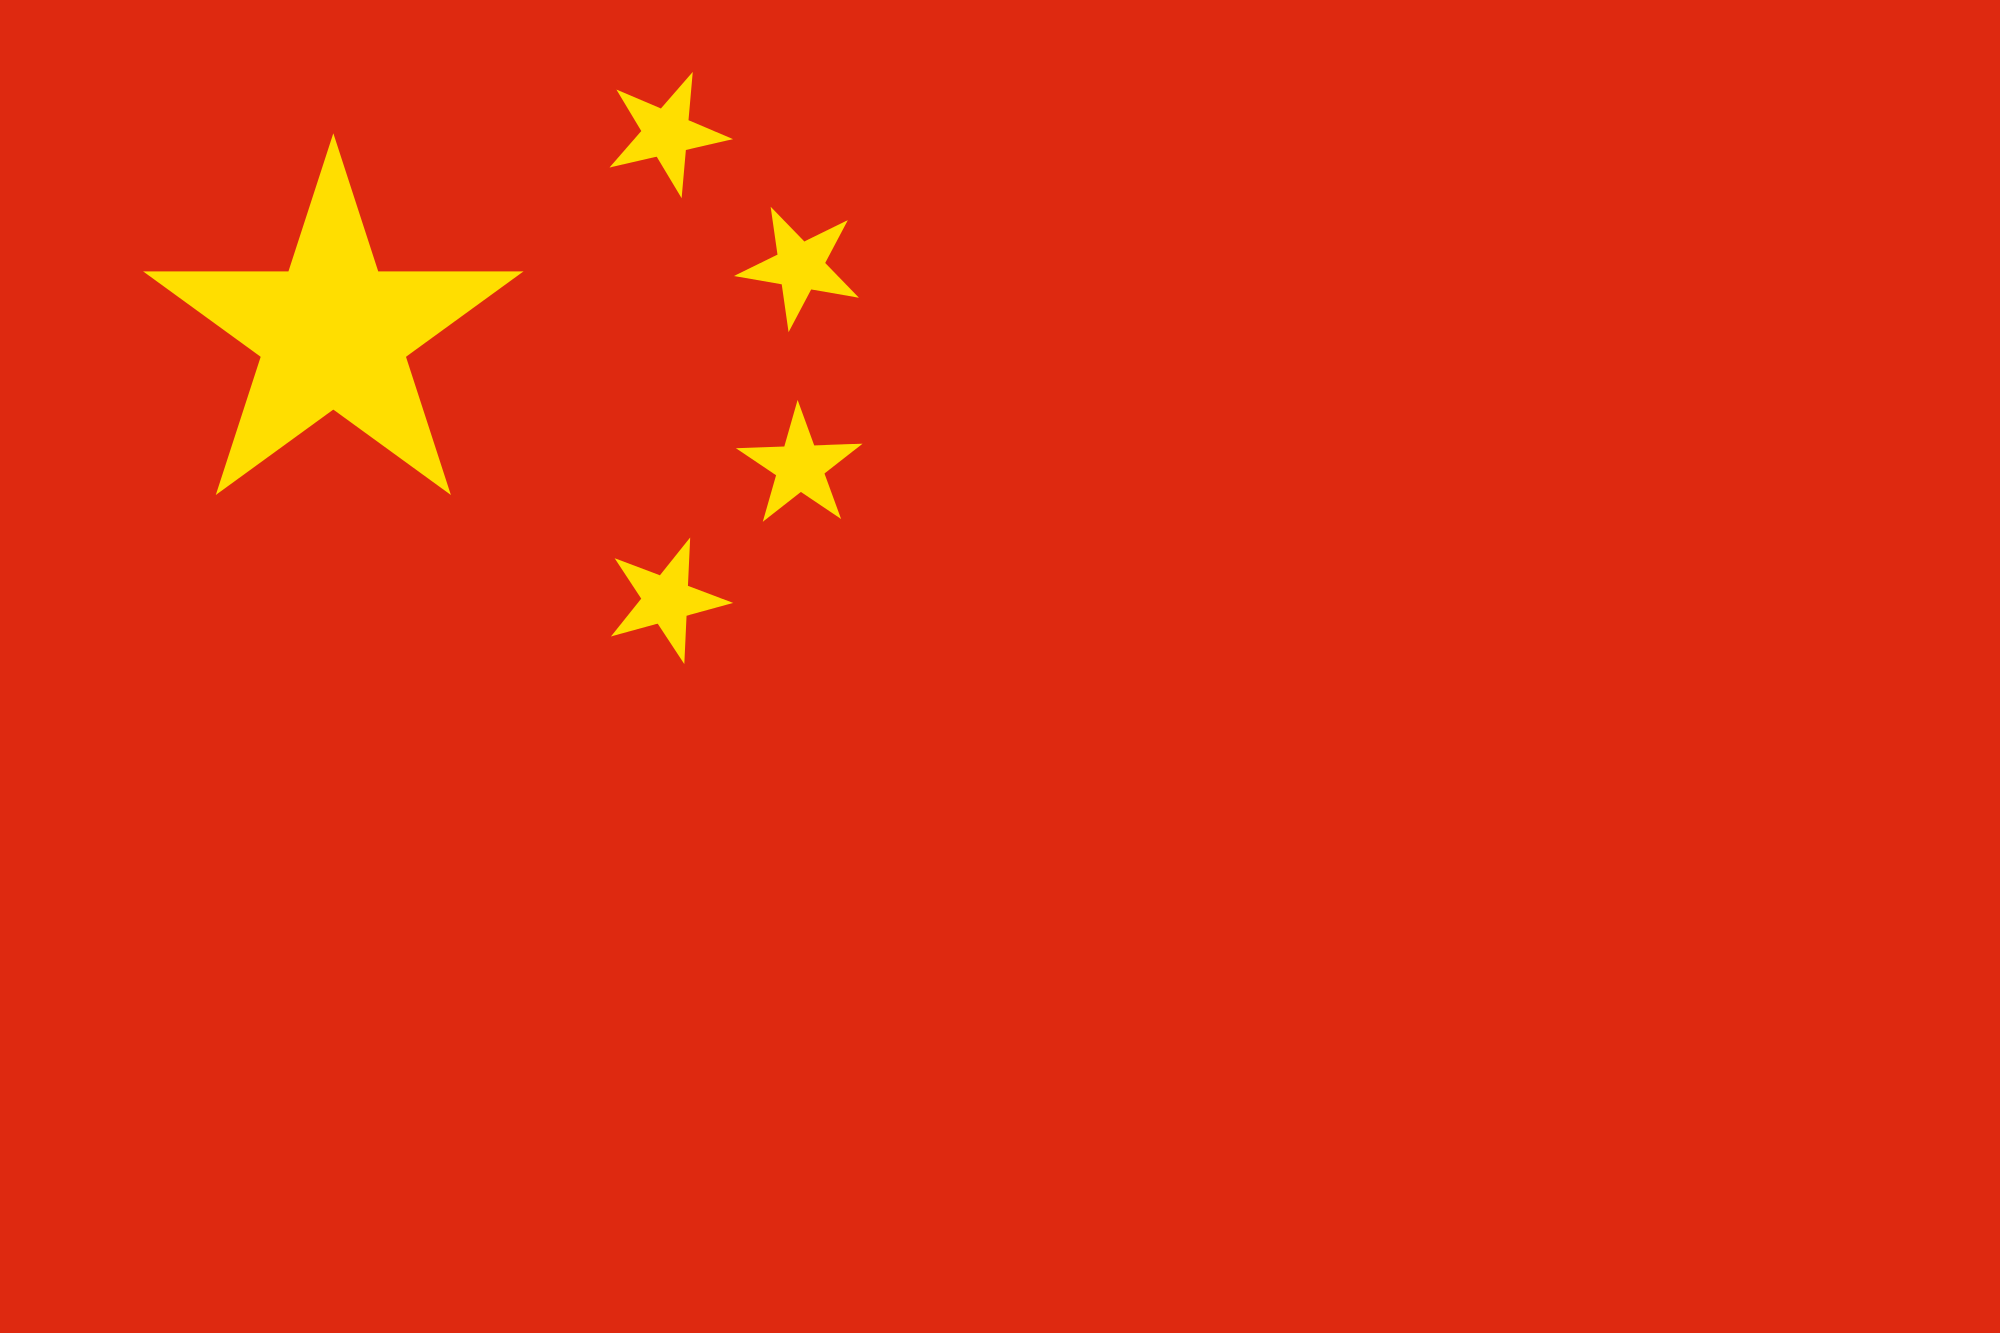 Flag_of_the_People's_Republic_of_China